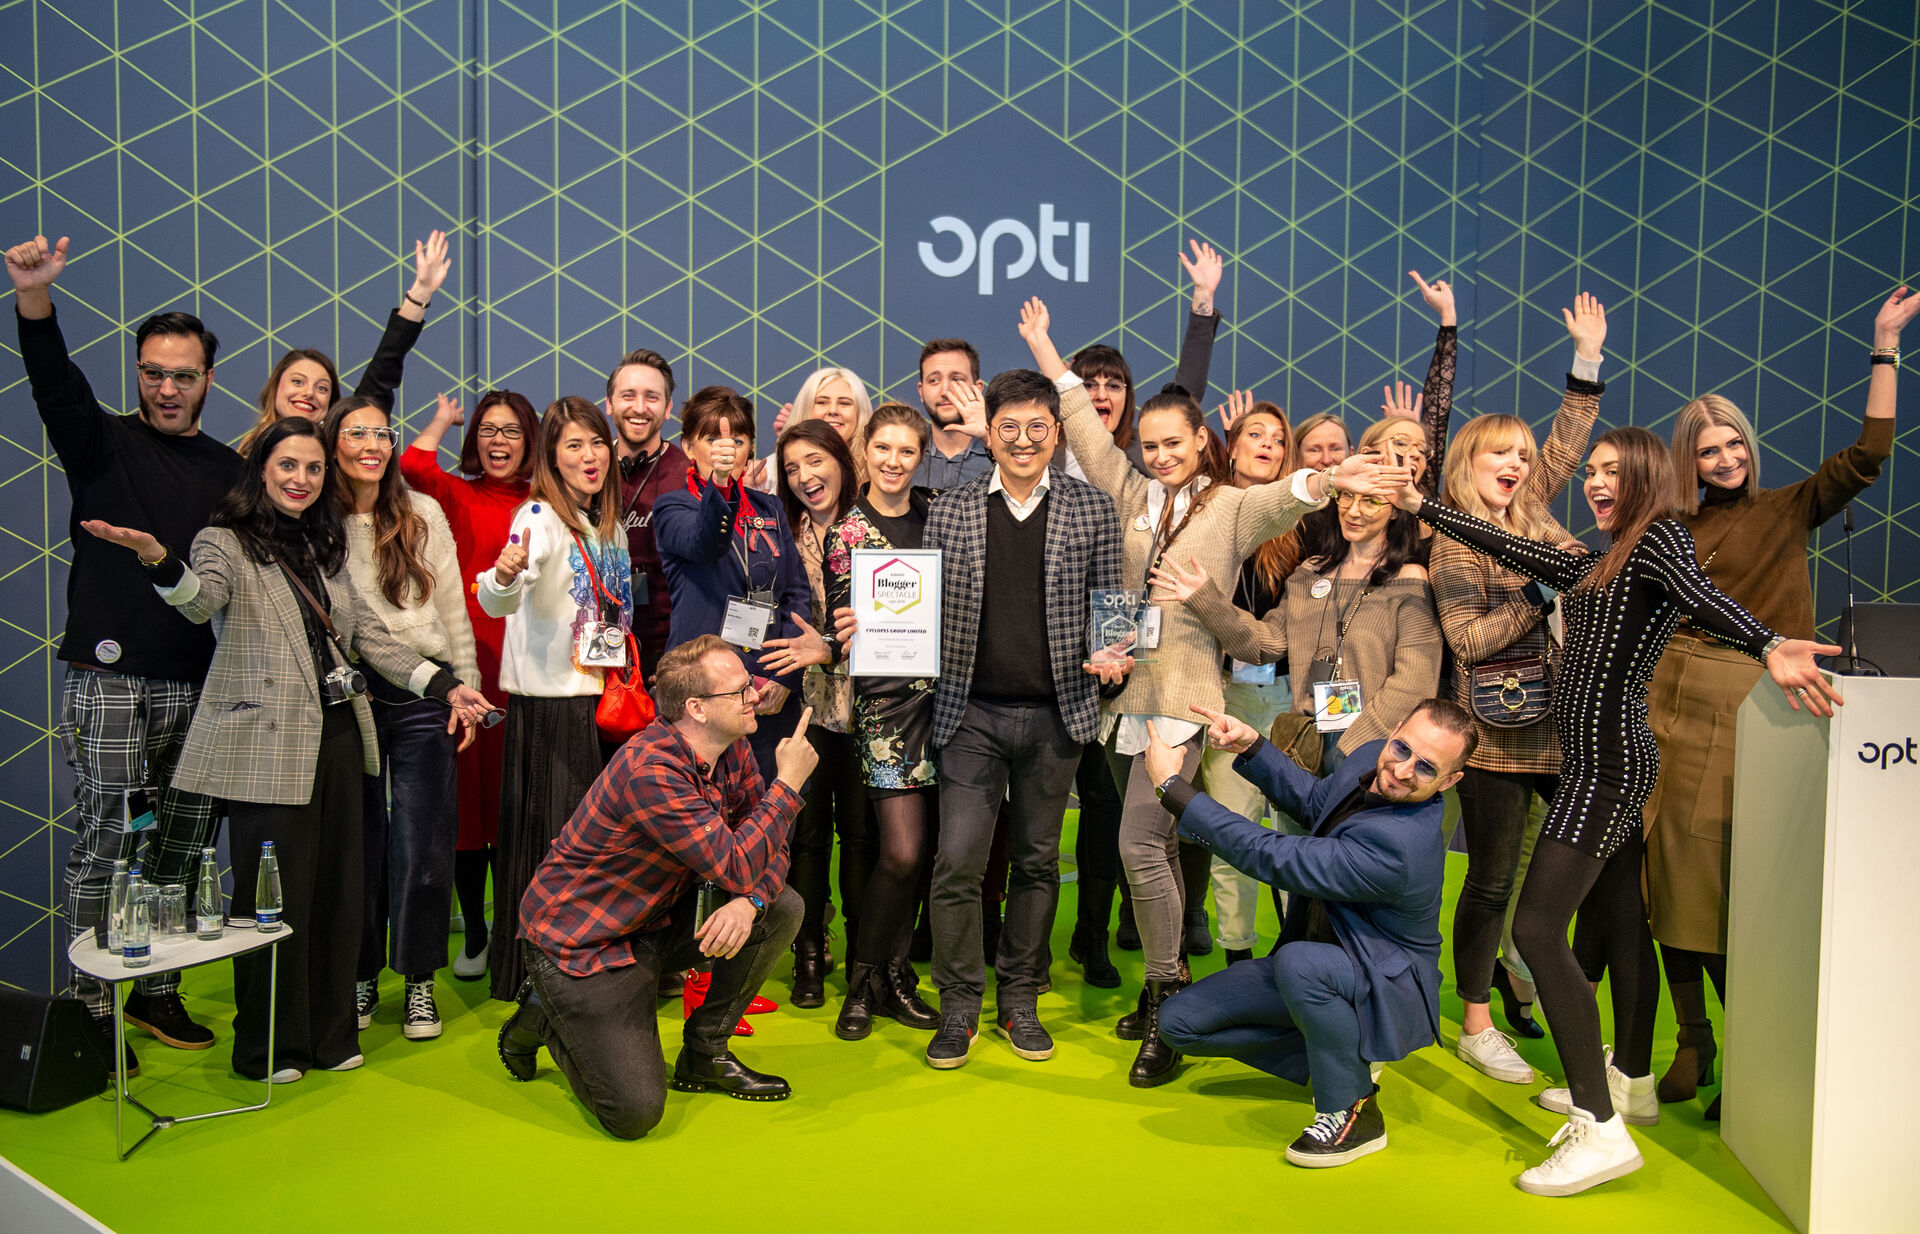 Opti Munich blogger spectacle award 2020